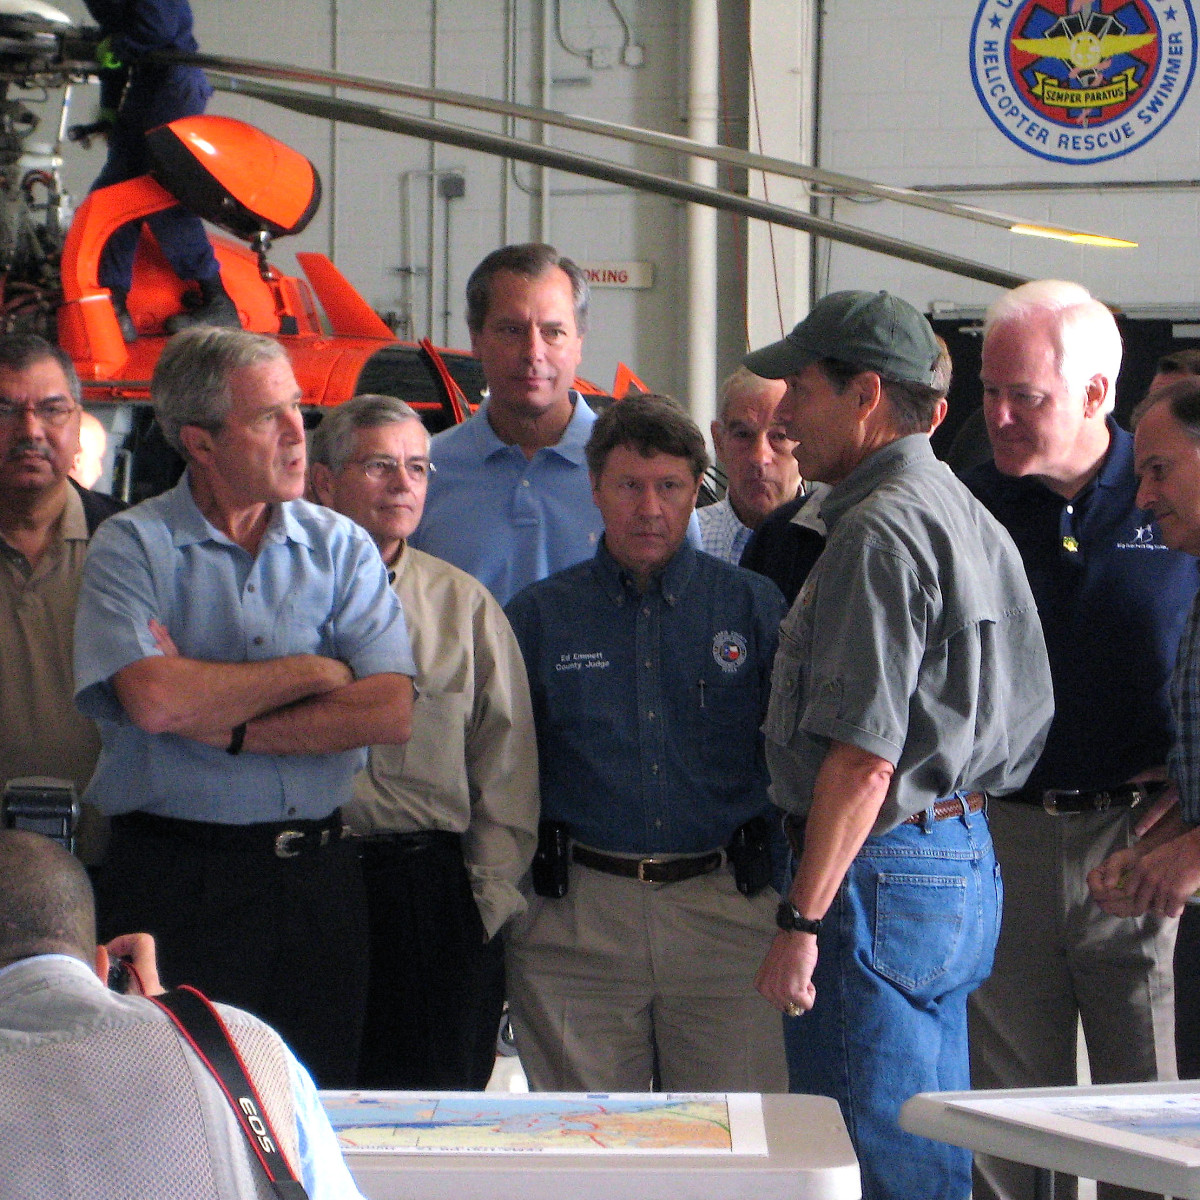 Houston news, Ed Emmett, George Bush after Hurricane Ike in 2008